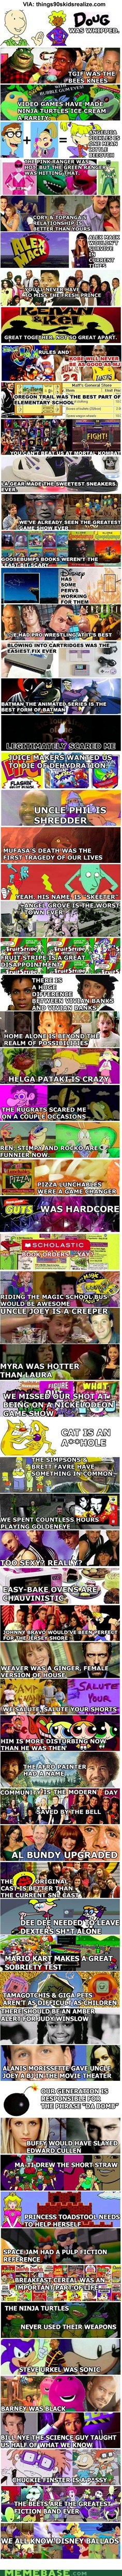 The 90s Were Baws